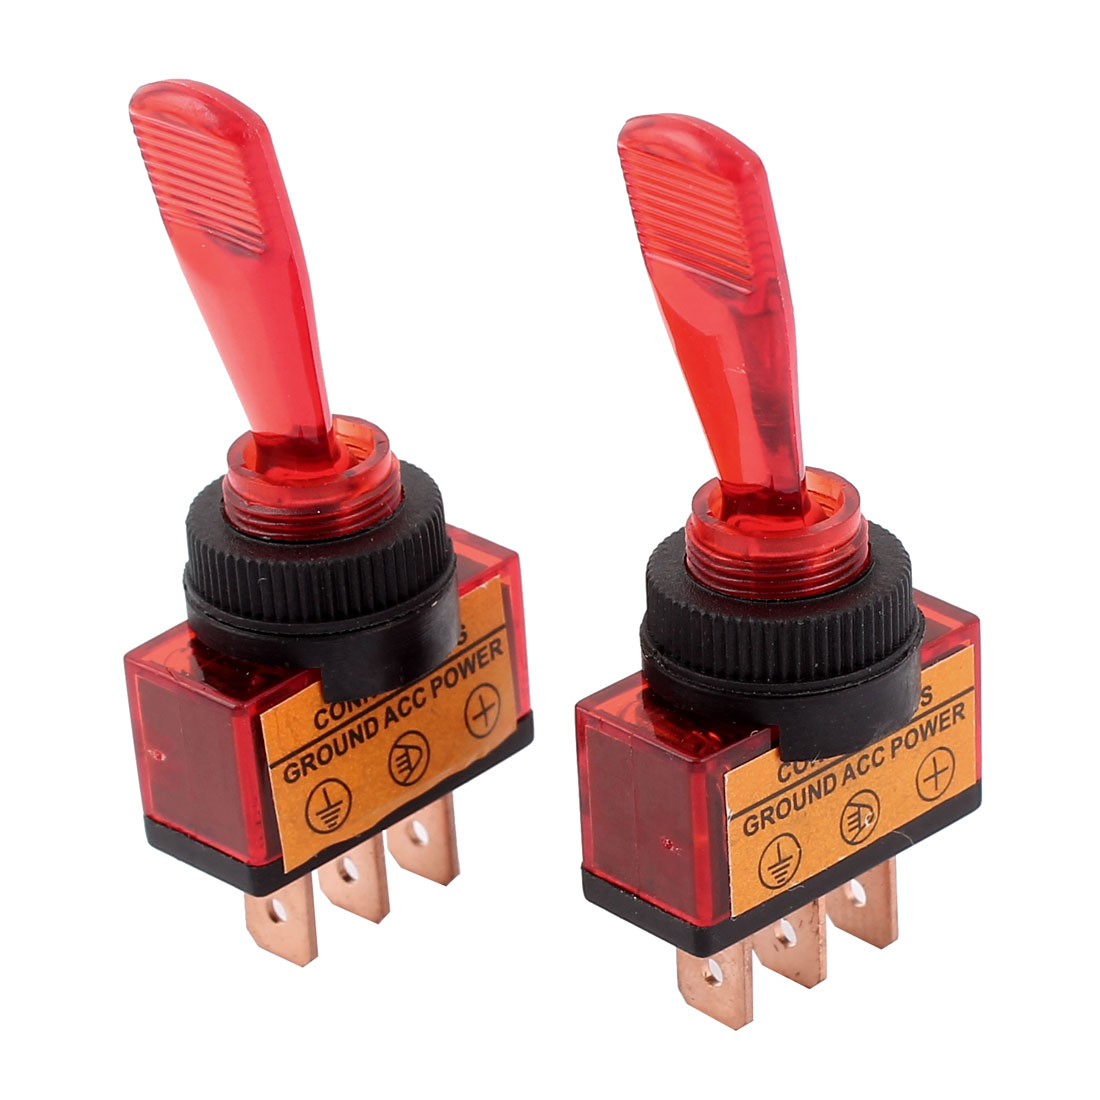 2 Pcs DC 12V 20A 12mm Thread Panel Mount SPDT 2-Position ON/OFF Red Car Toggle Switch